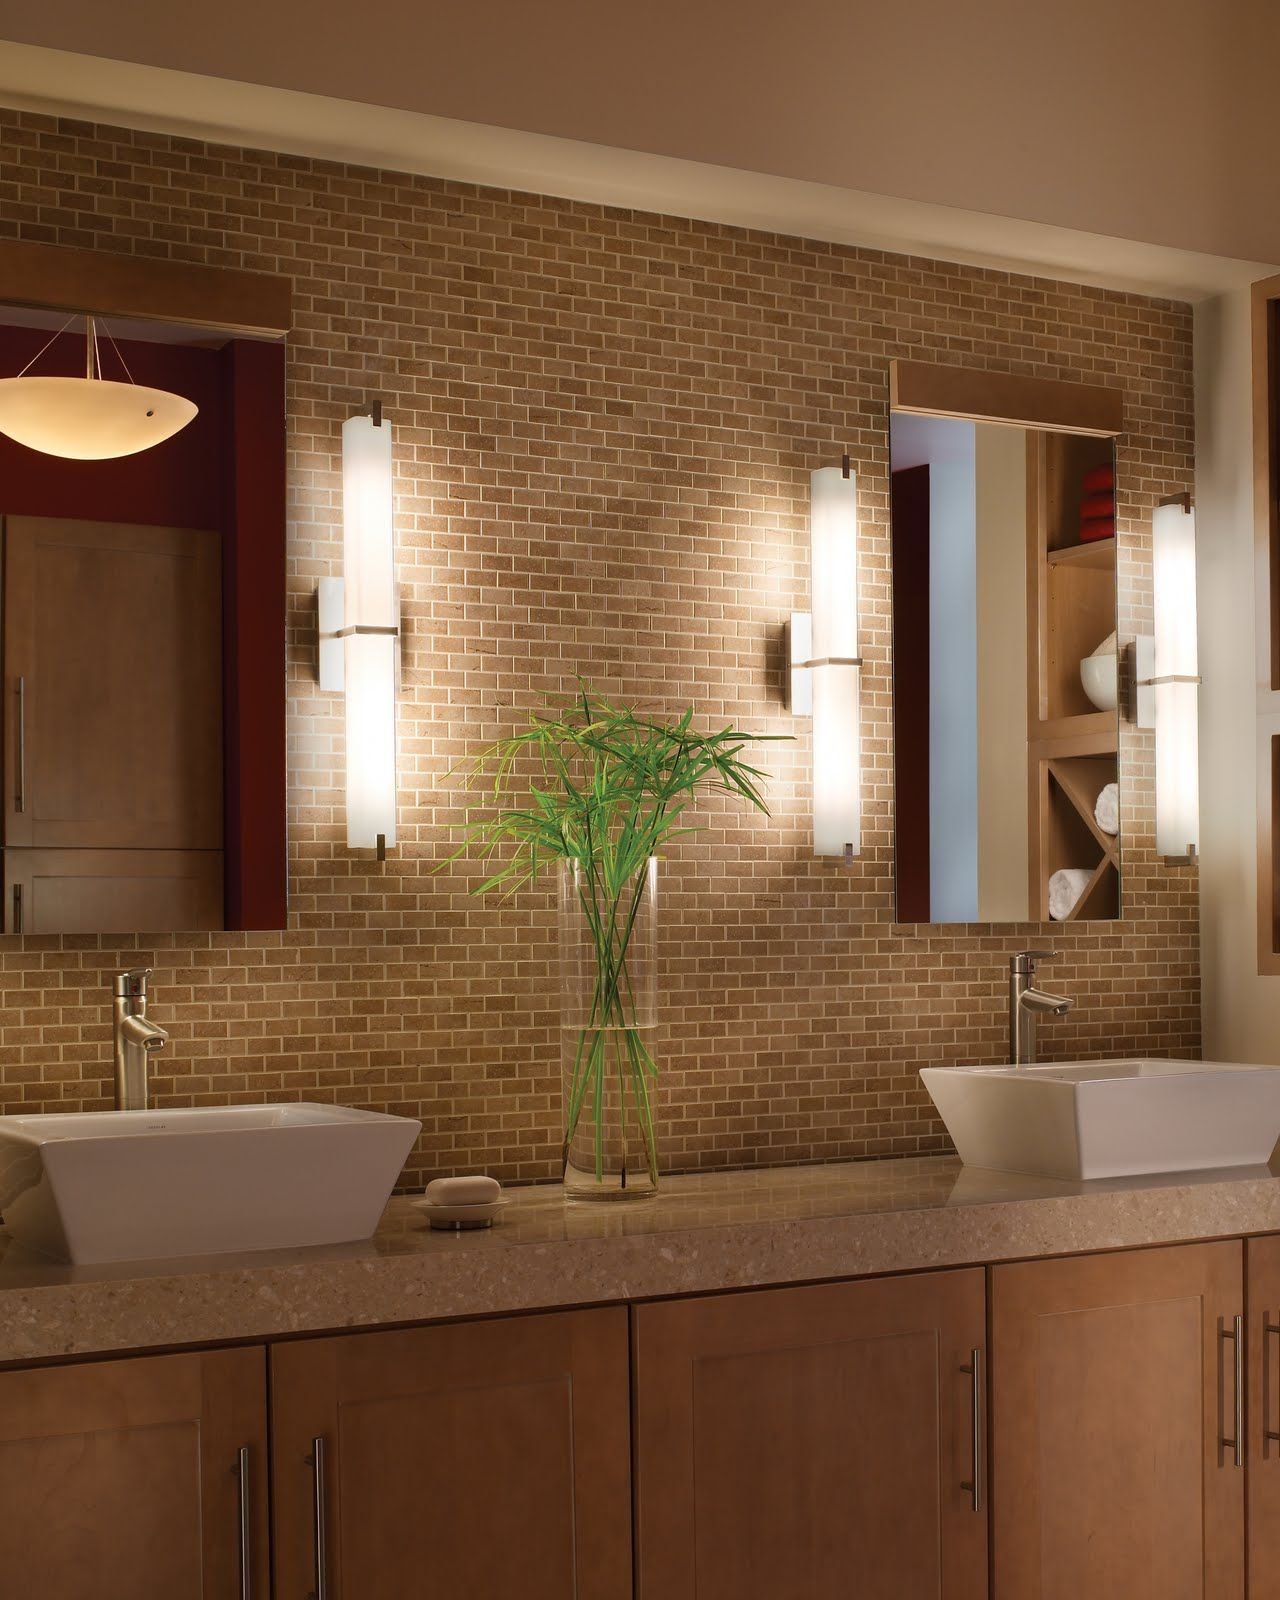 bathroom vanity lighting covered in maximum aesthetichttpwww - Contemporary Bathroom Light Fixtures